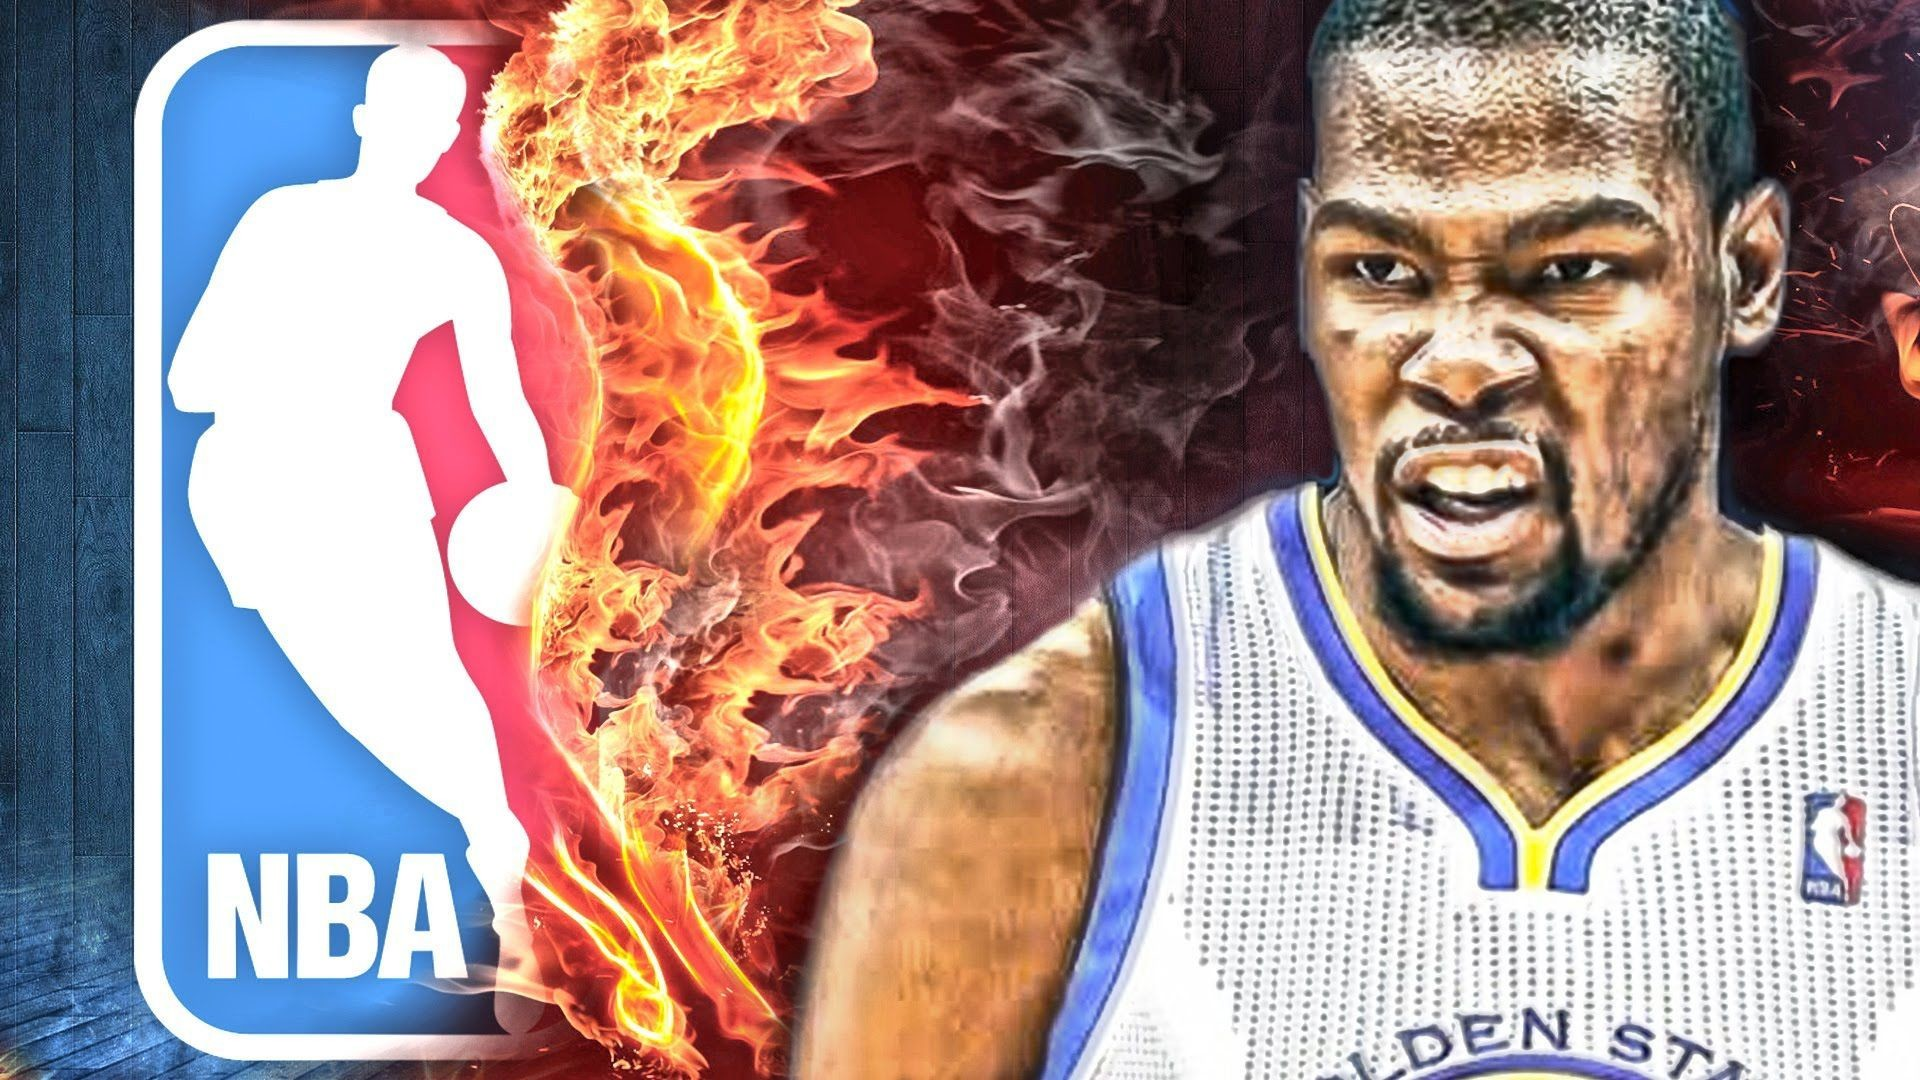 How To Make Live Wallpaper Work Iphone X Kevin Durant Wallpaper Hd 2017 183 ①